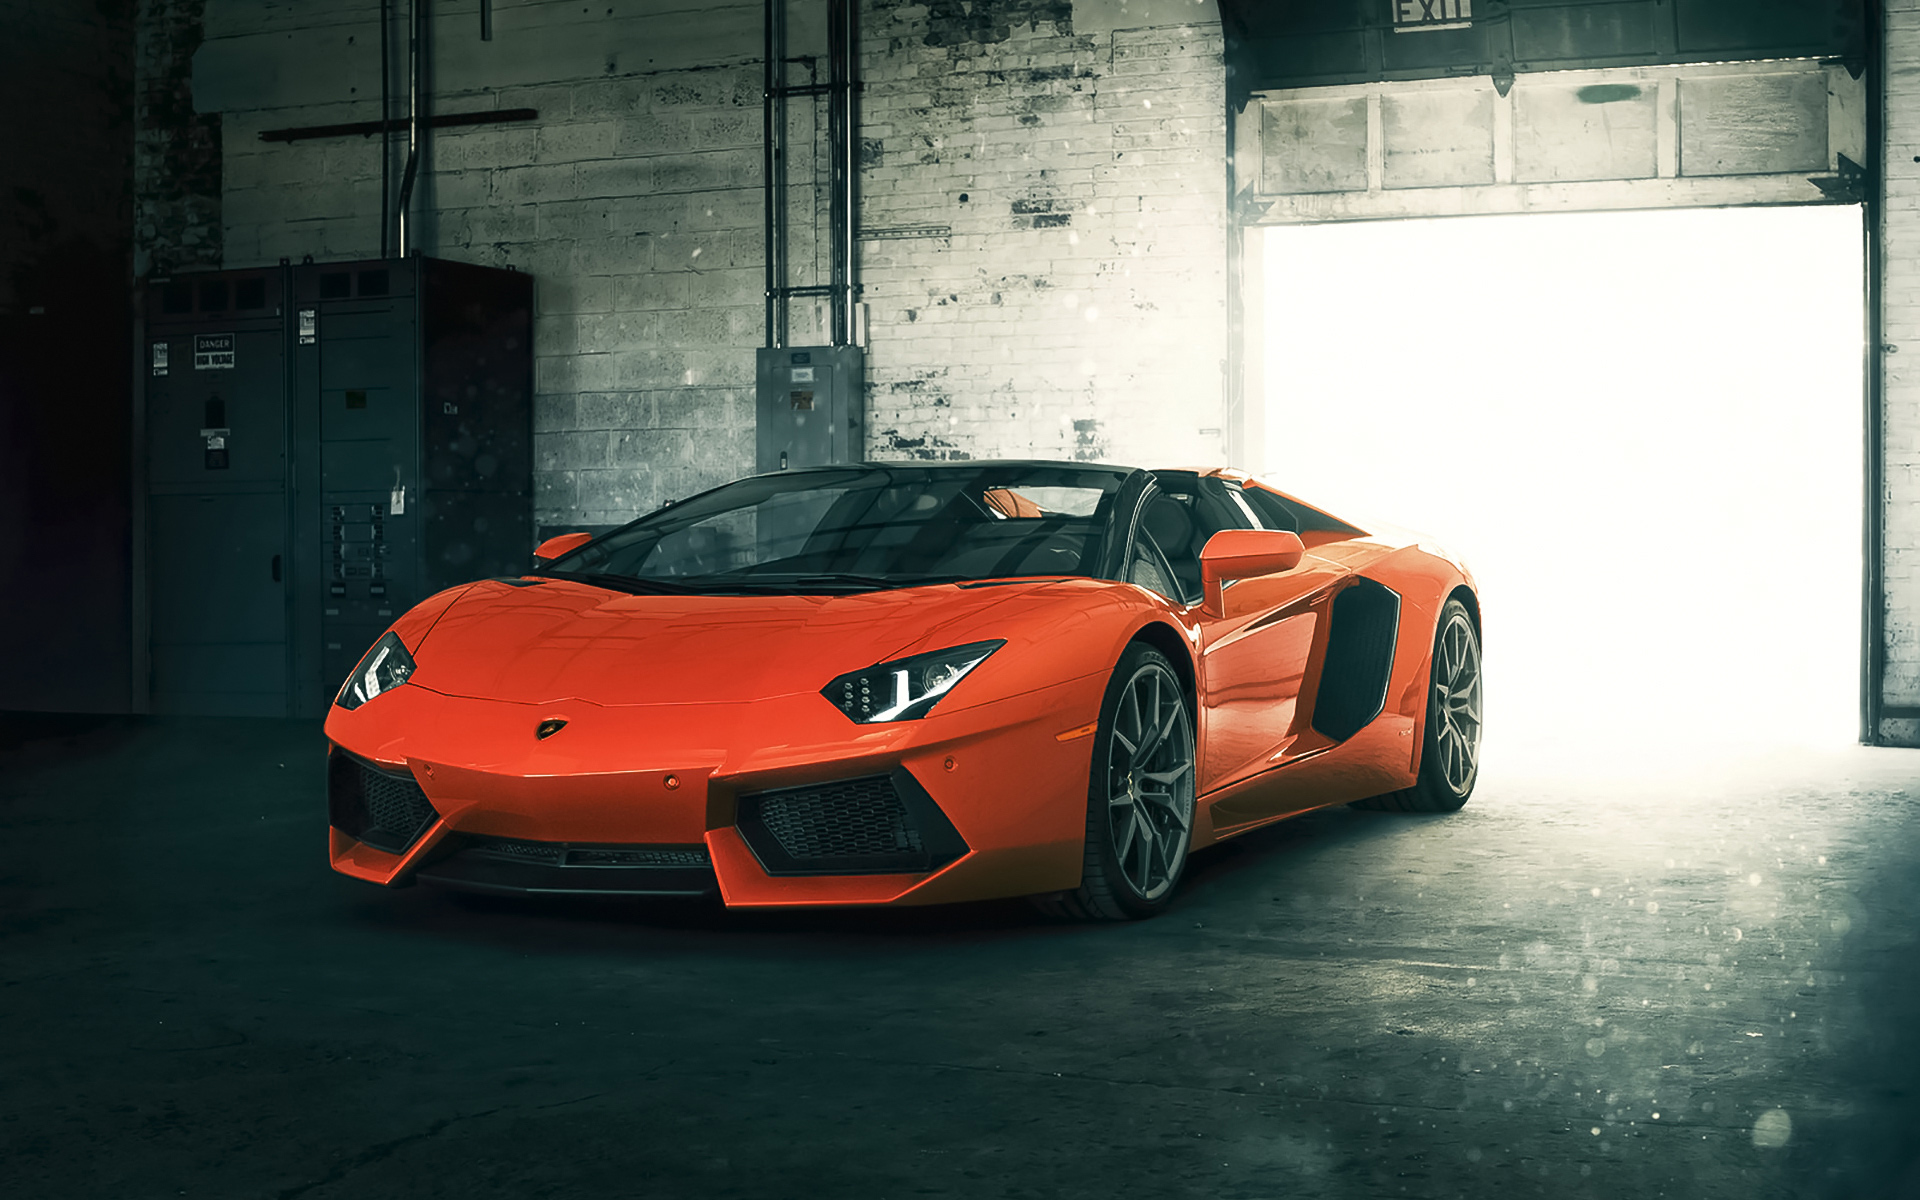 2016 Lamborghini Aventador Lp 700 4 Roadster Wallpaper Hd Car